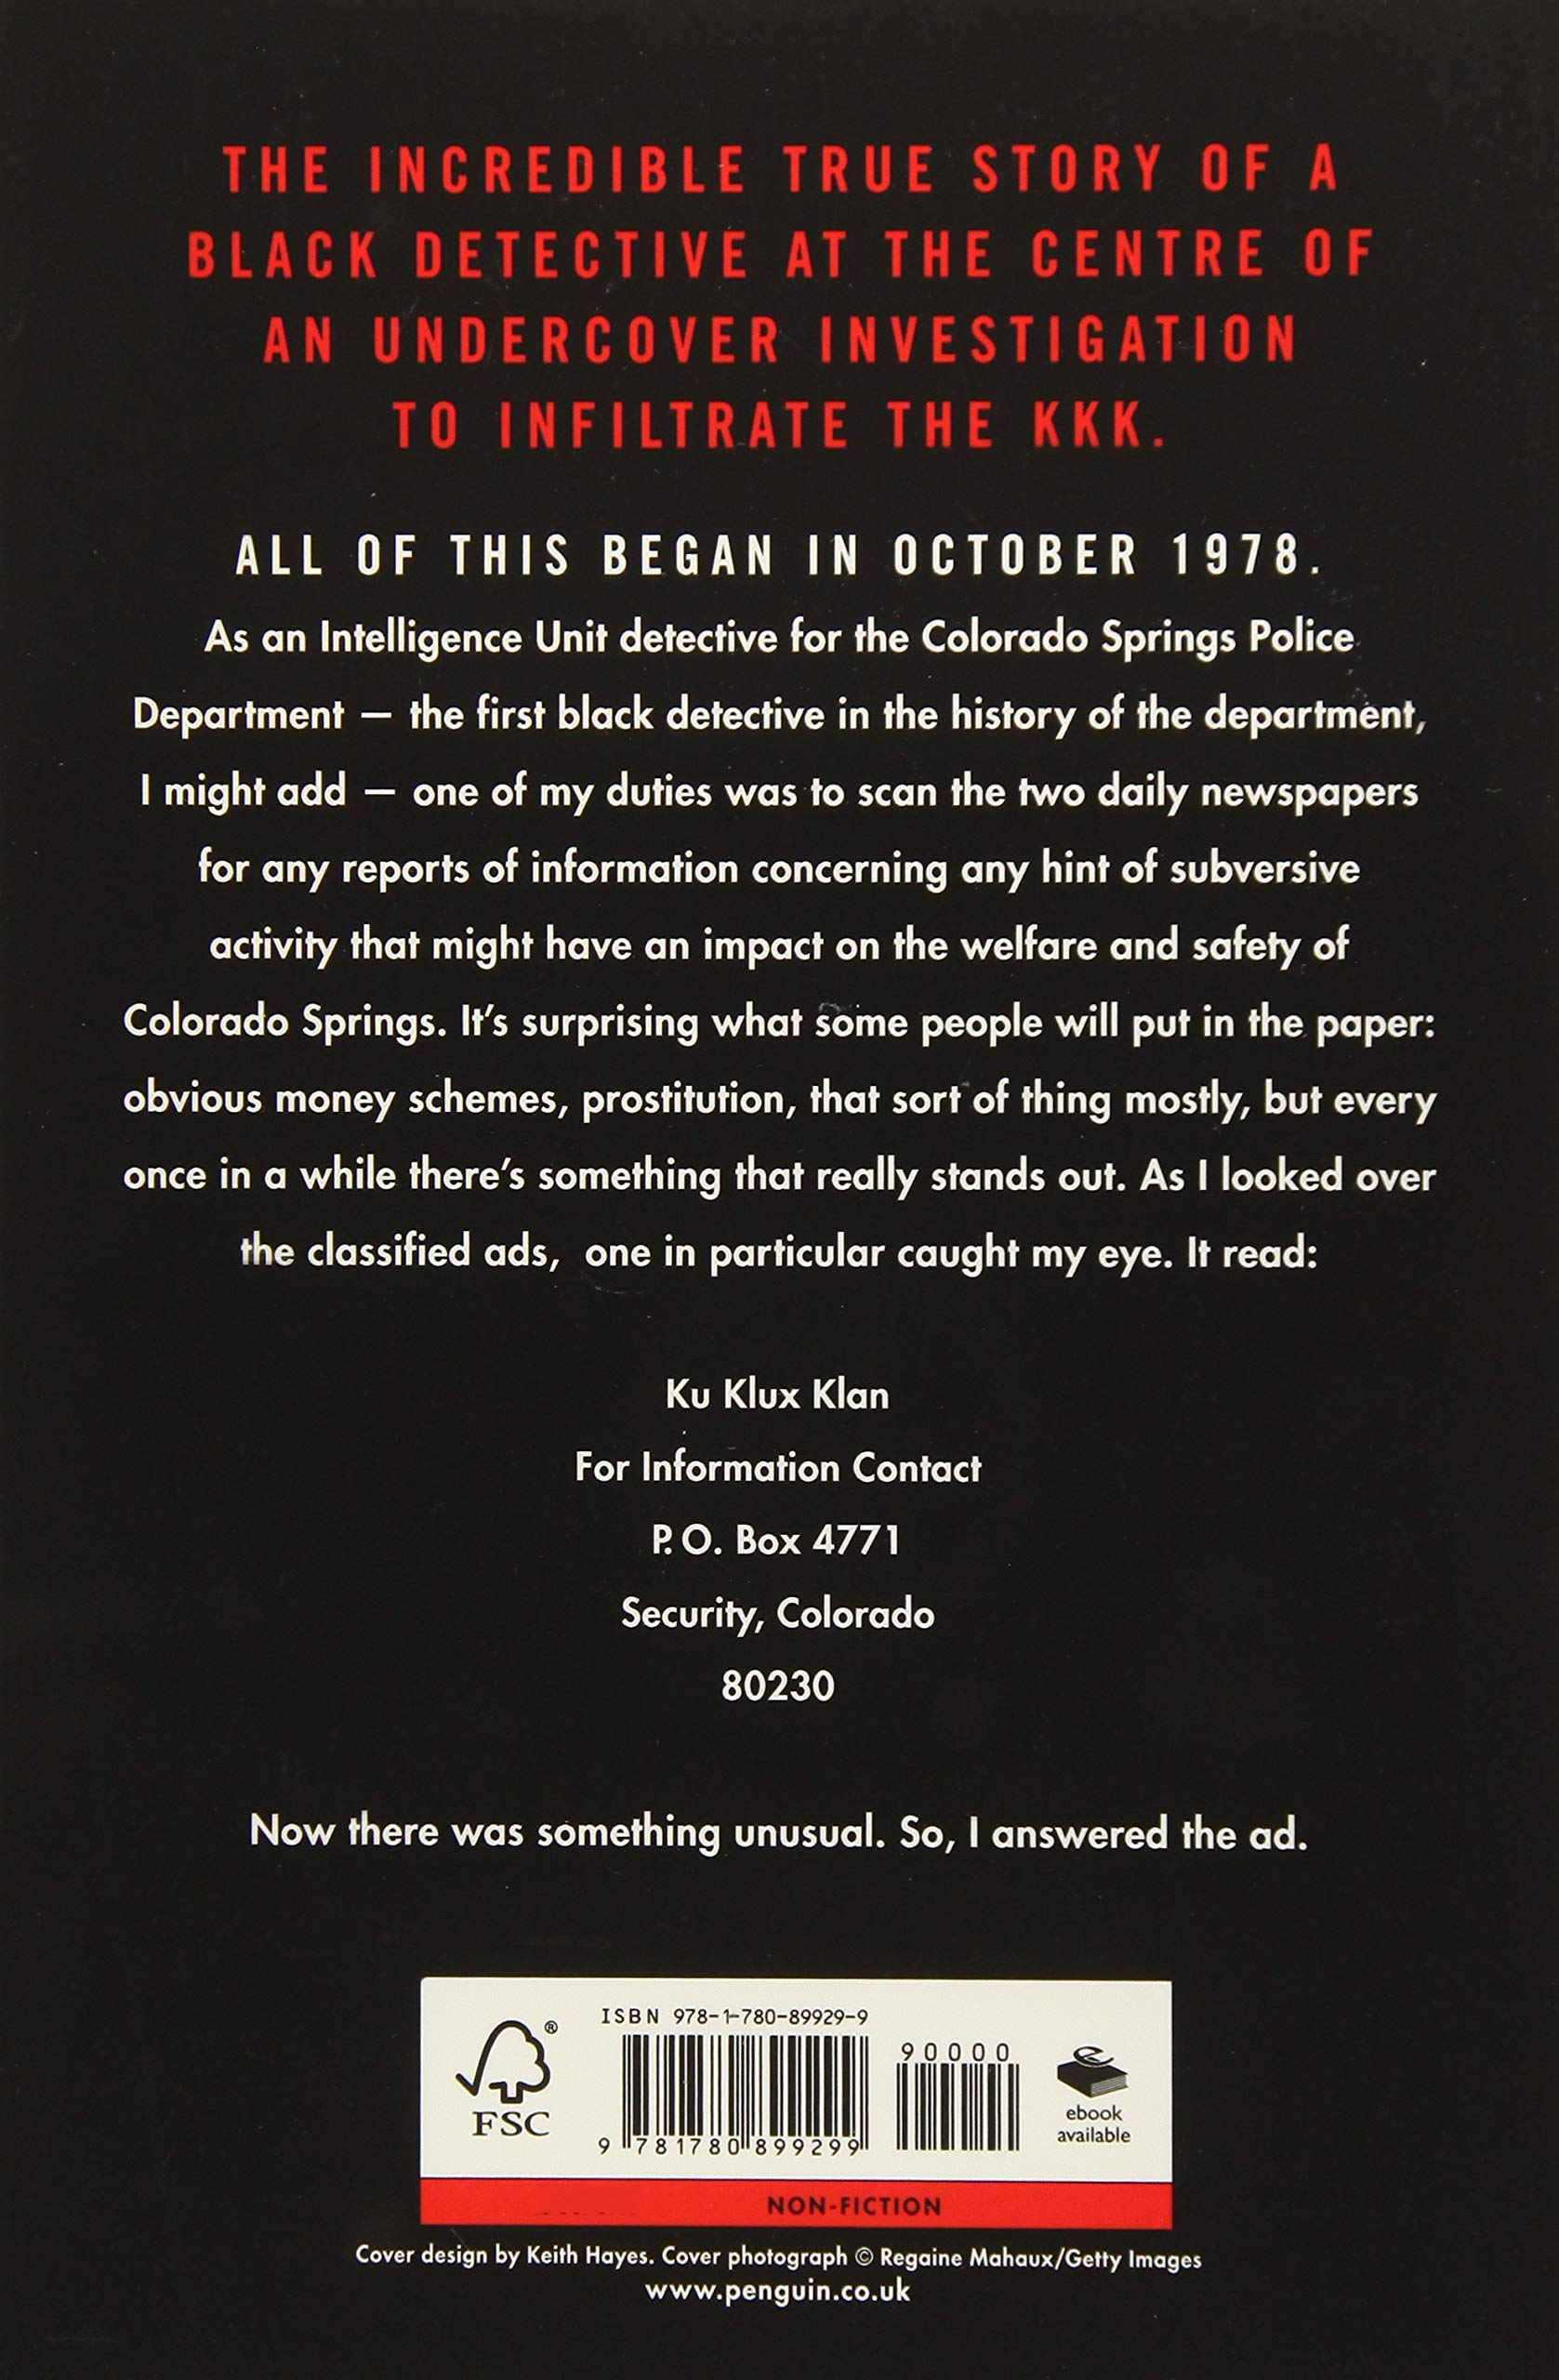 Black Klansman. Race Hate And The Undercover Investigation of ...